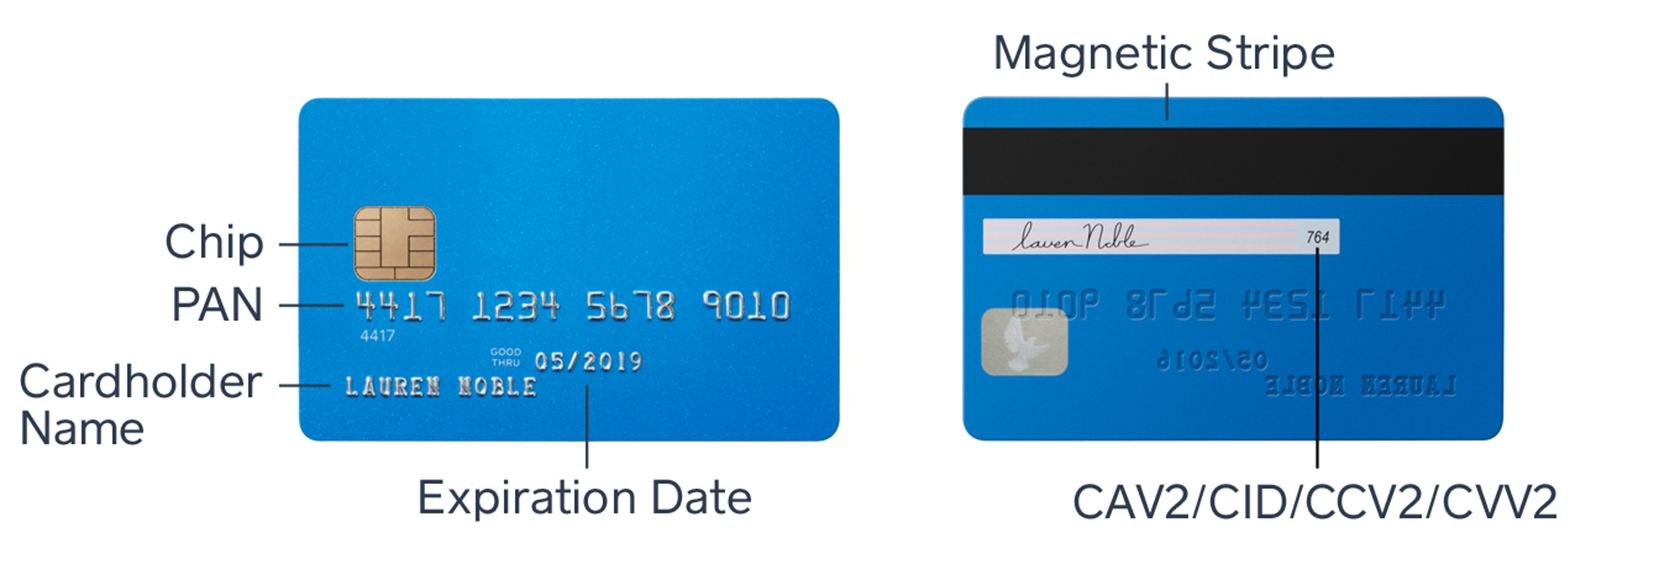 Pci compliance what you need to know anatomy of a credit card 1betcityfo Images